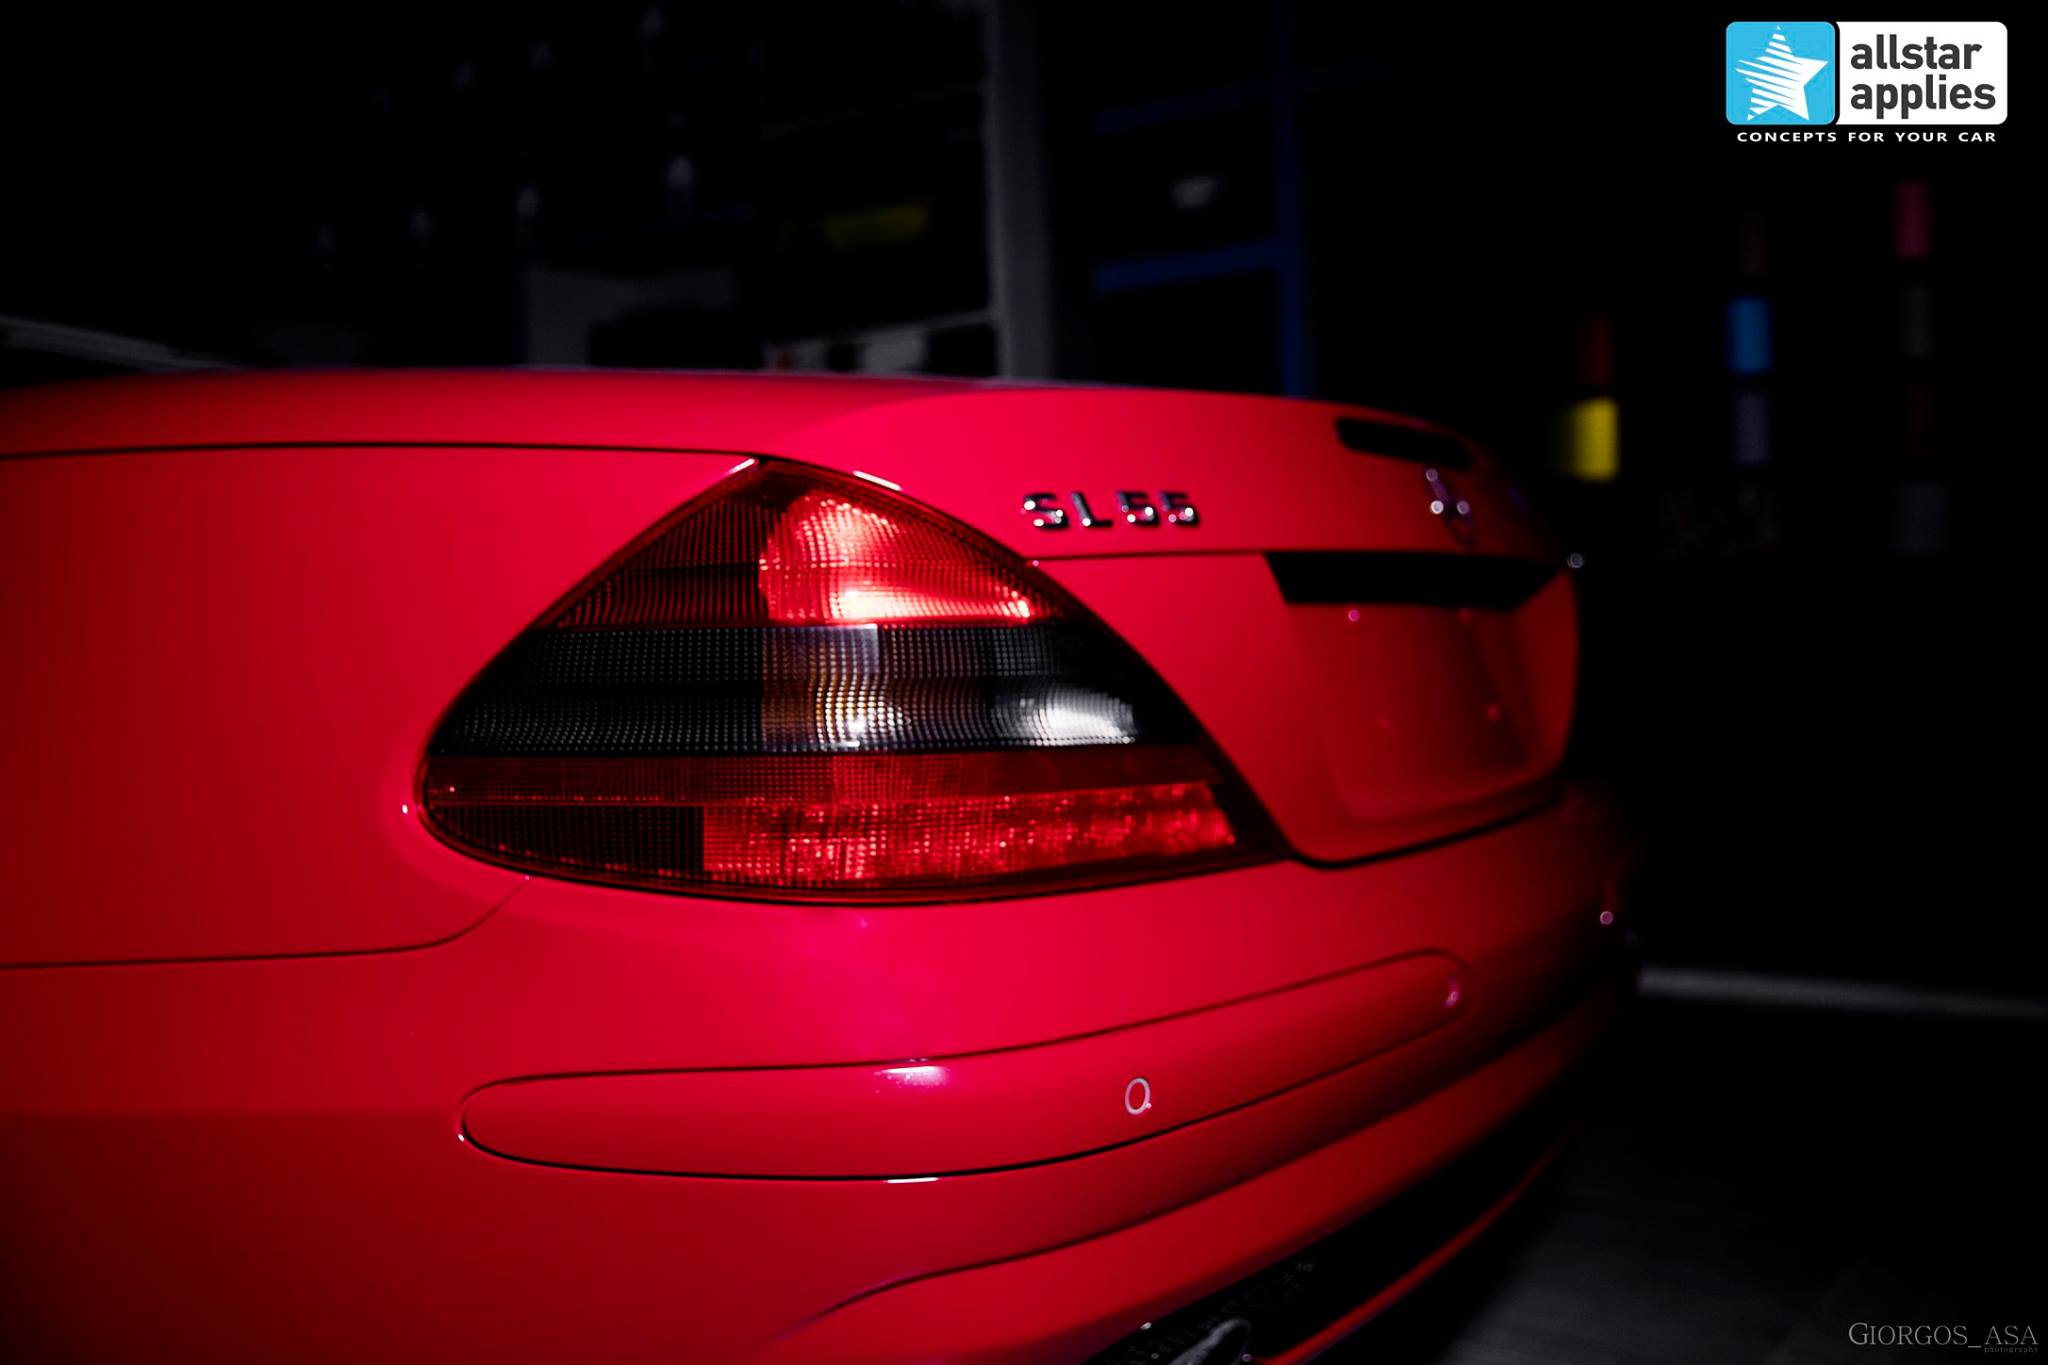 Mercedes SL55 AMG - Red Dark Metallic (10)